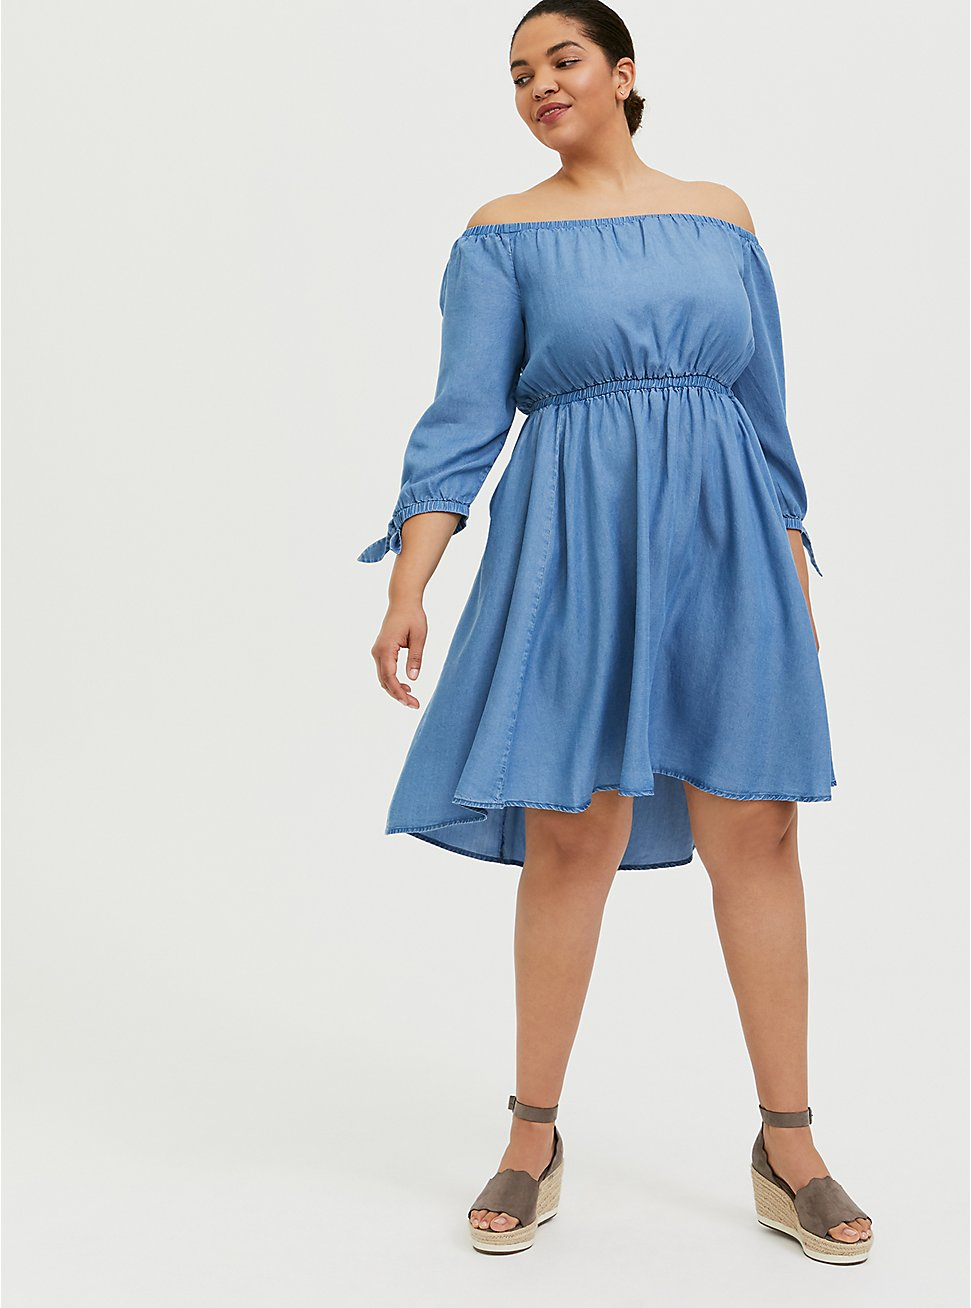 Plus Size Blue Chambray Off The Shoulder Skater Dress, CHAMBRAY, hi-res